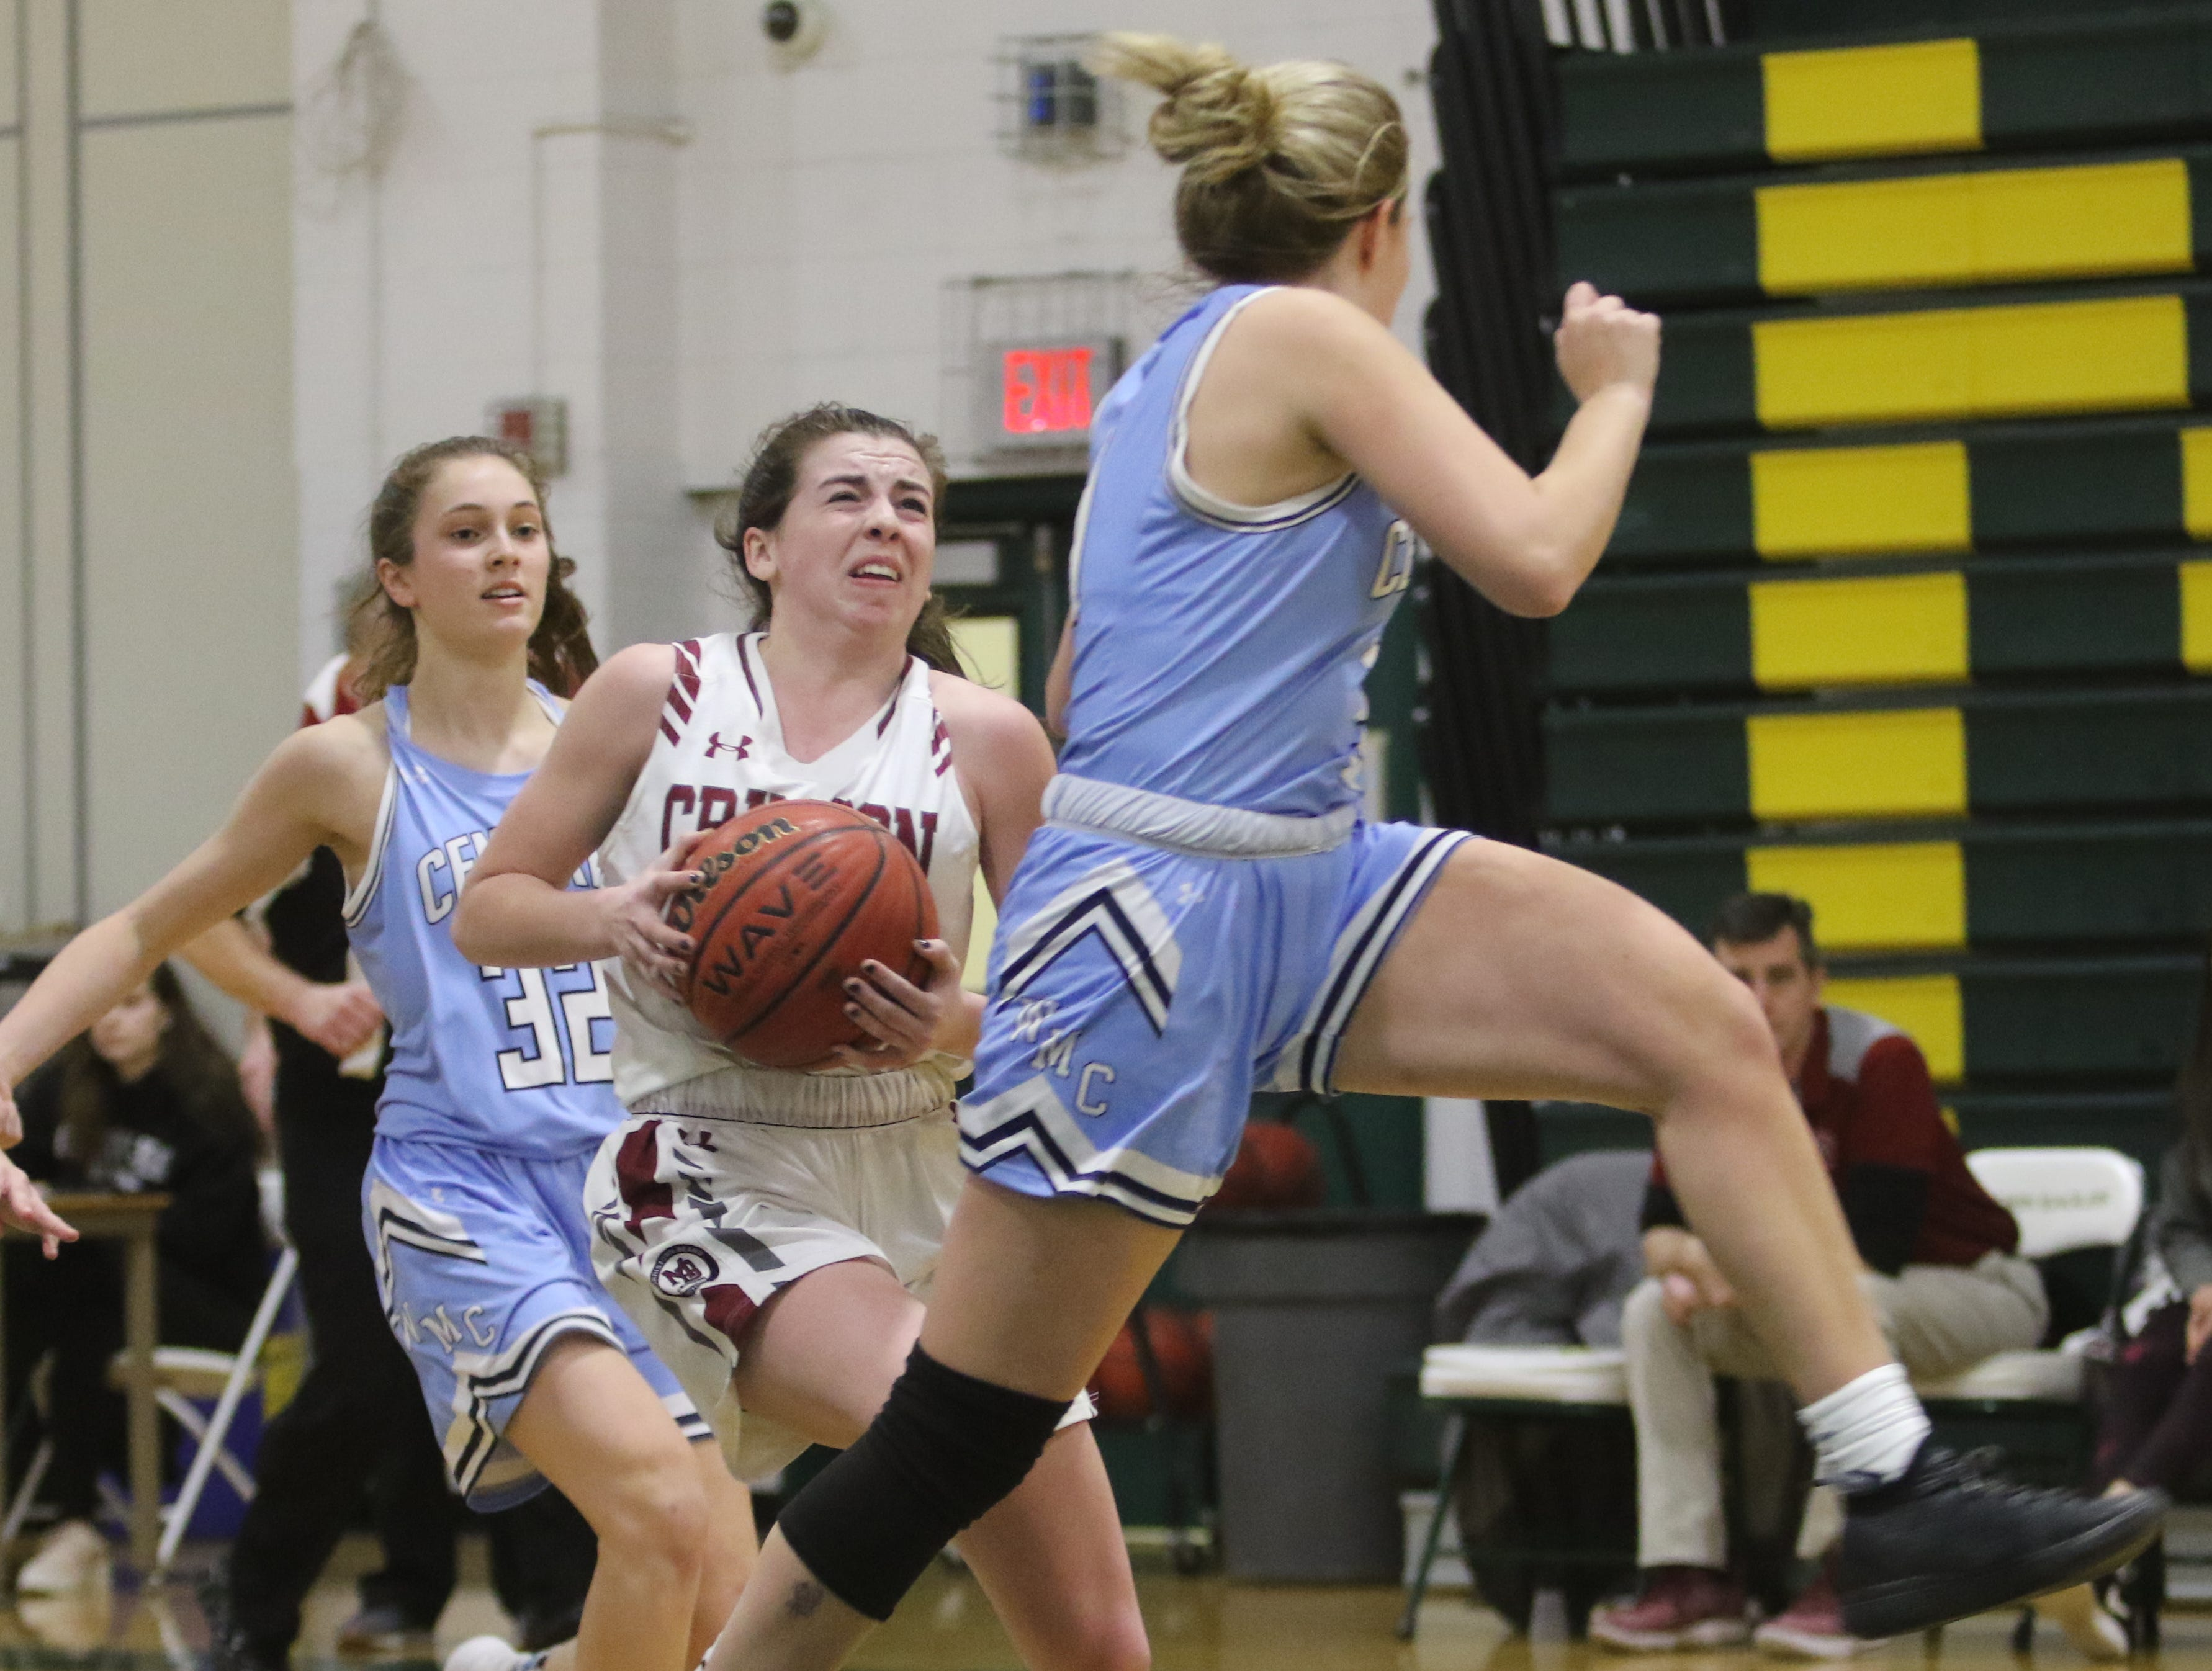 Bridget Monaghan of Morristown-Beard goes to the basket as Mackenzie Selvaggi of West Morris flies by her in the second half.